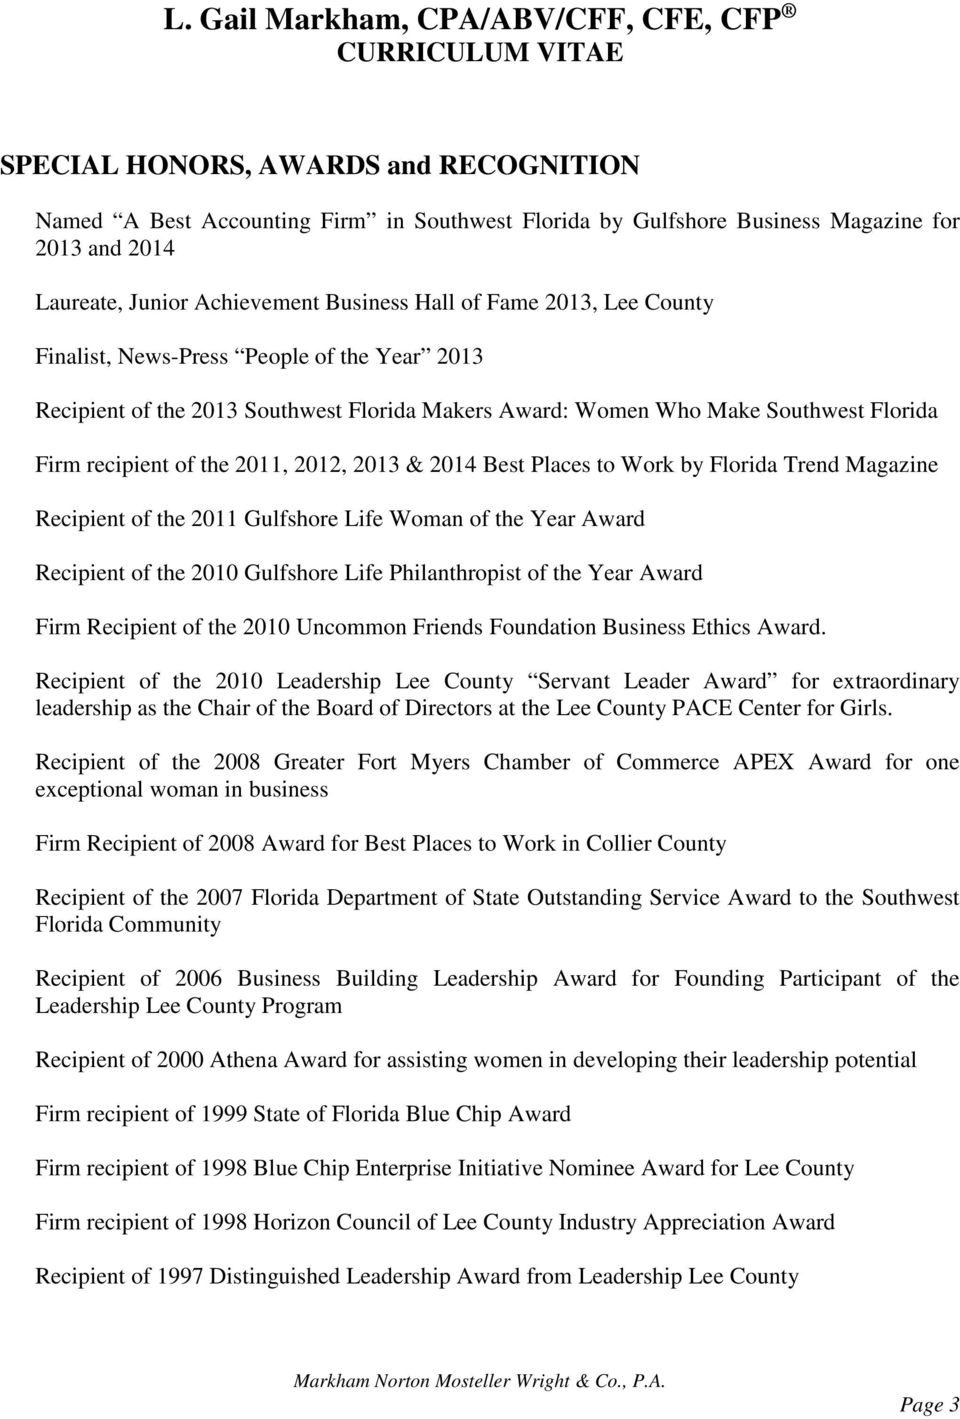 of the 2011, 2012, 2013 & 2014 Best Places to Work by Florida Trend Magazine Recipient of the 2011 Gulfshore Life Woman of the Year Award Recipient of the 2010 Gulfshore Life Philanthropist of the